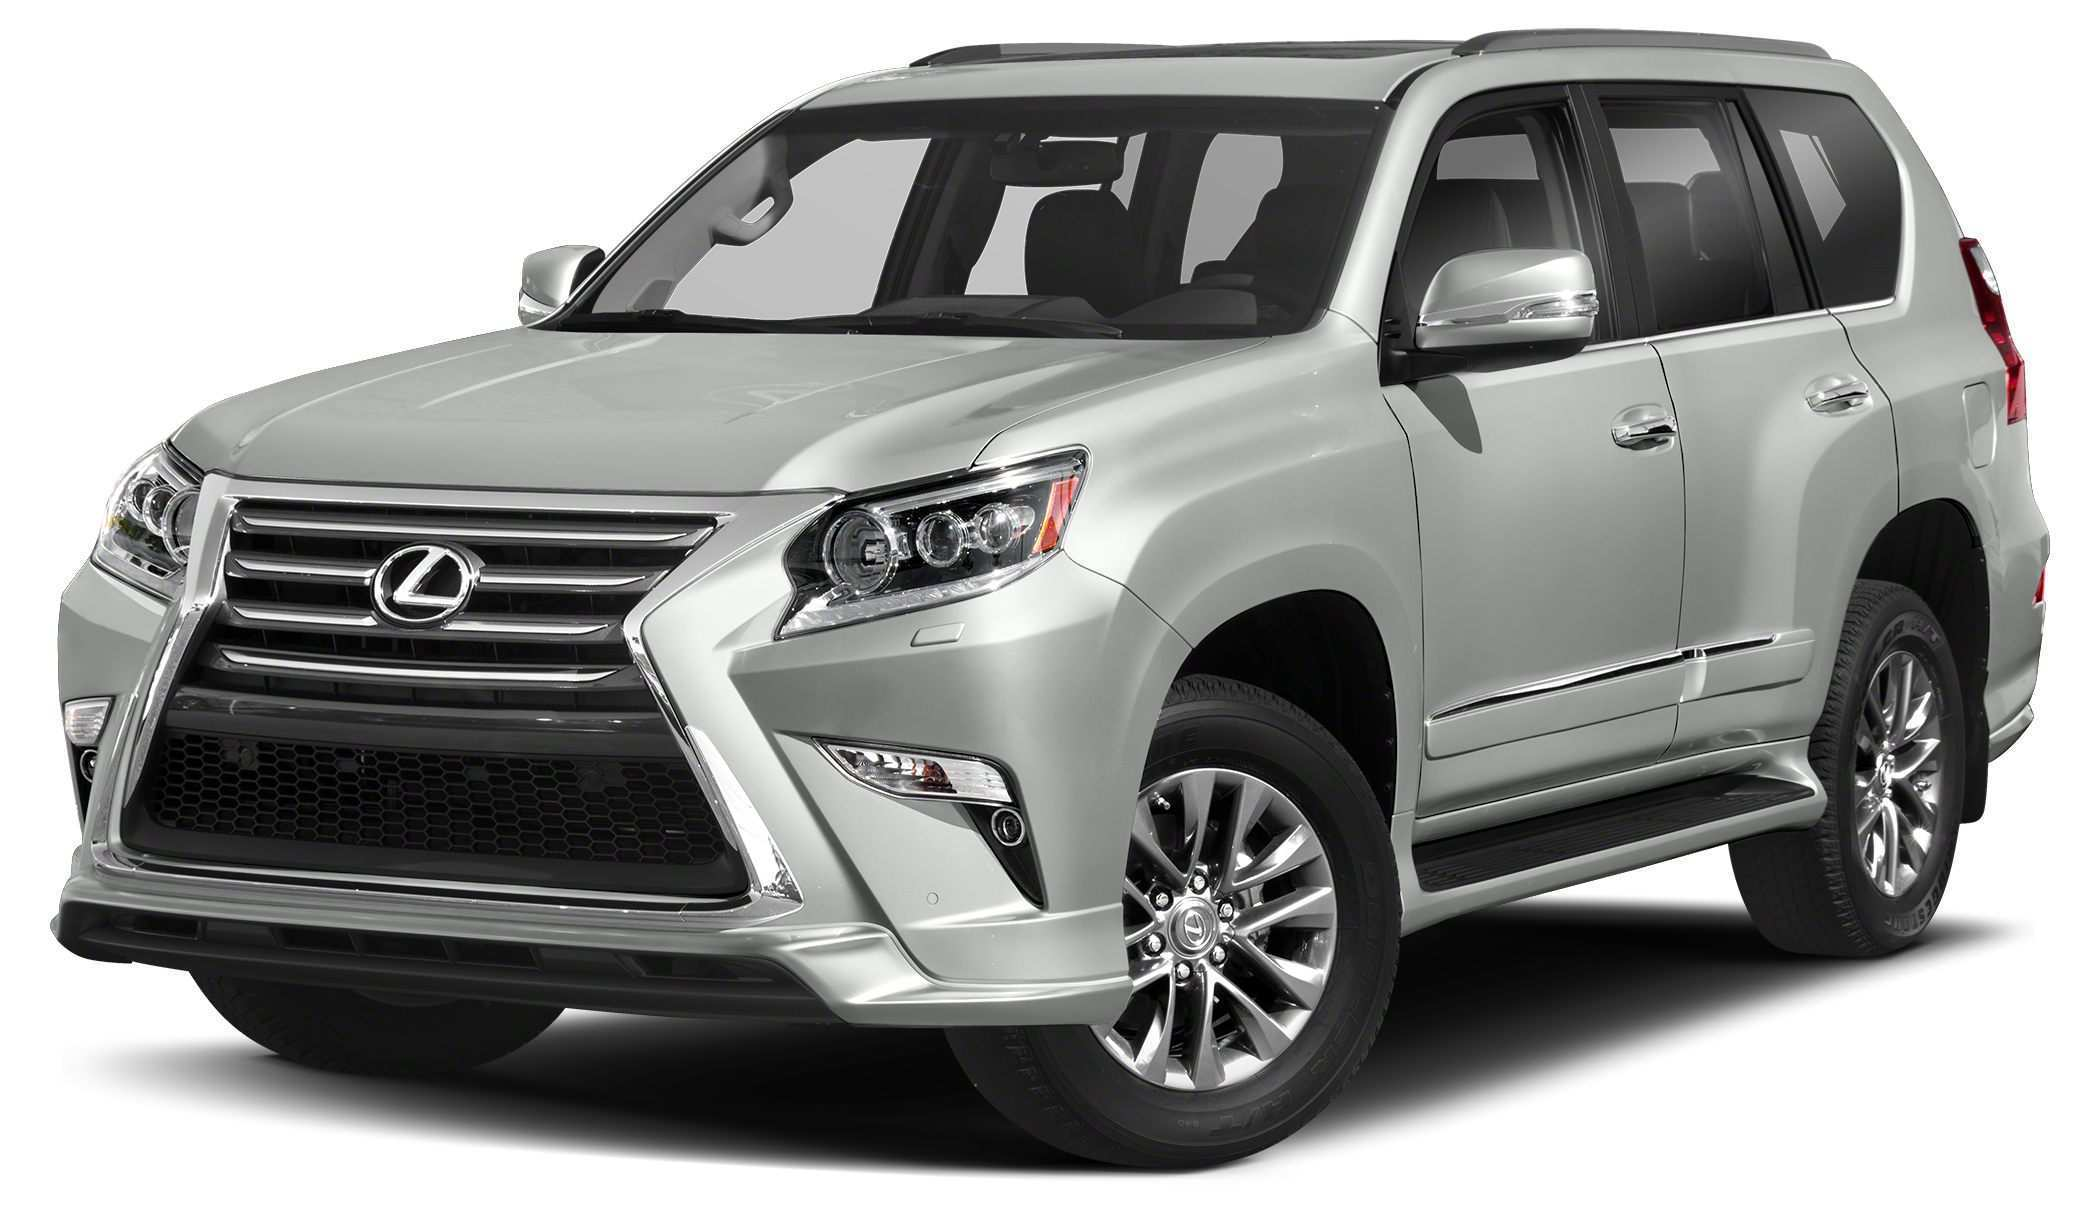 71 The Best 2019 Lexus Lx Speed Test